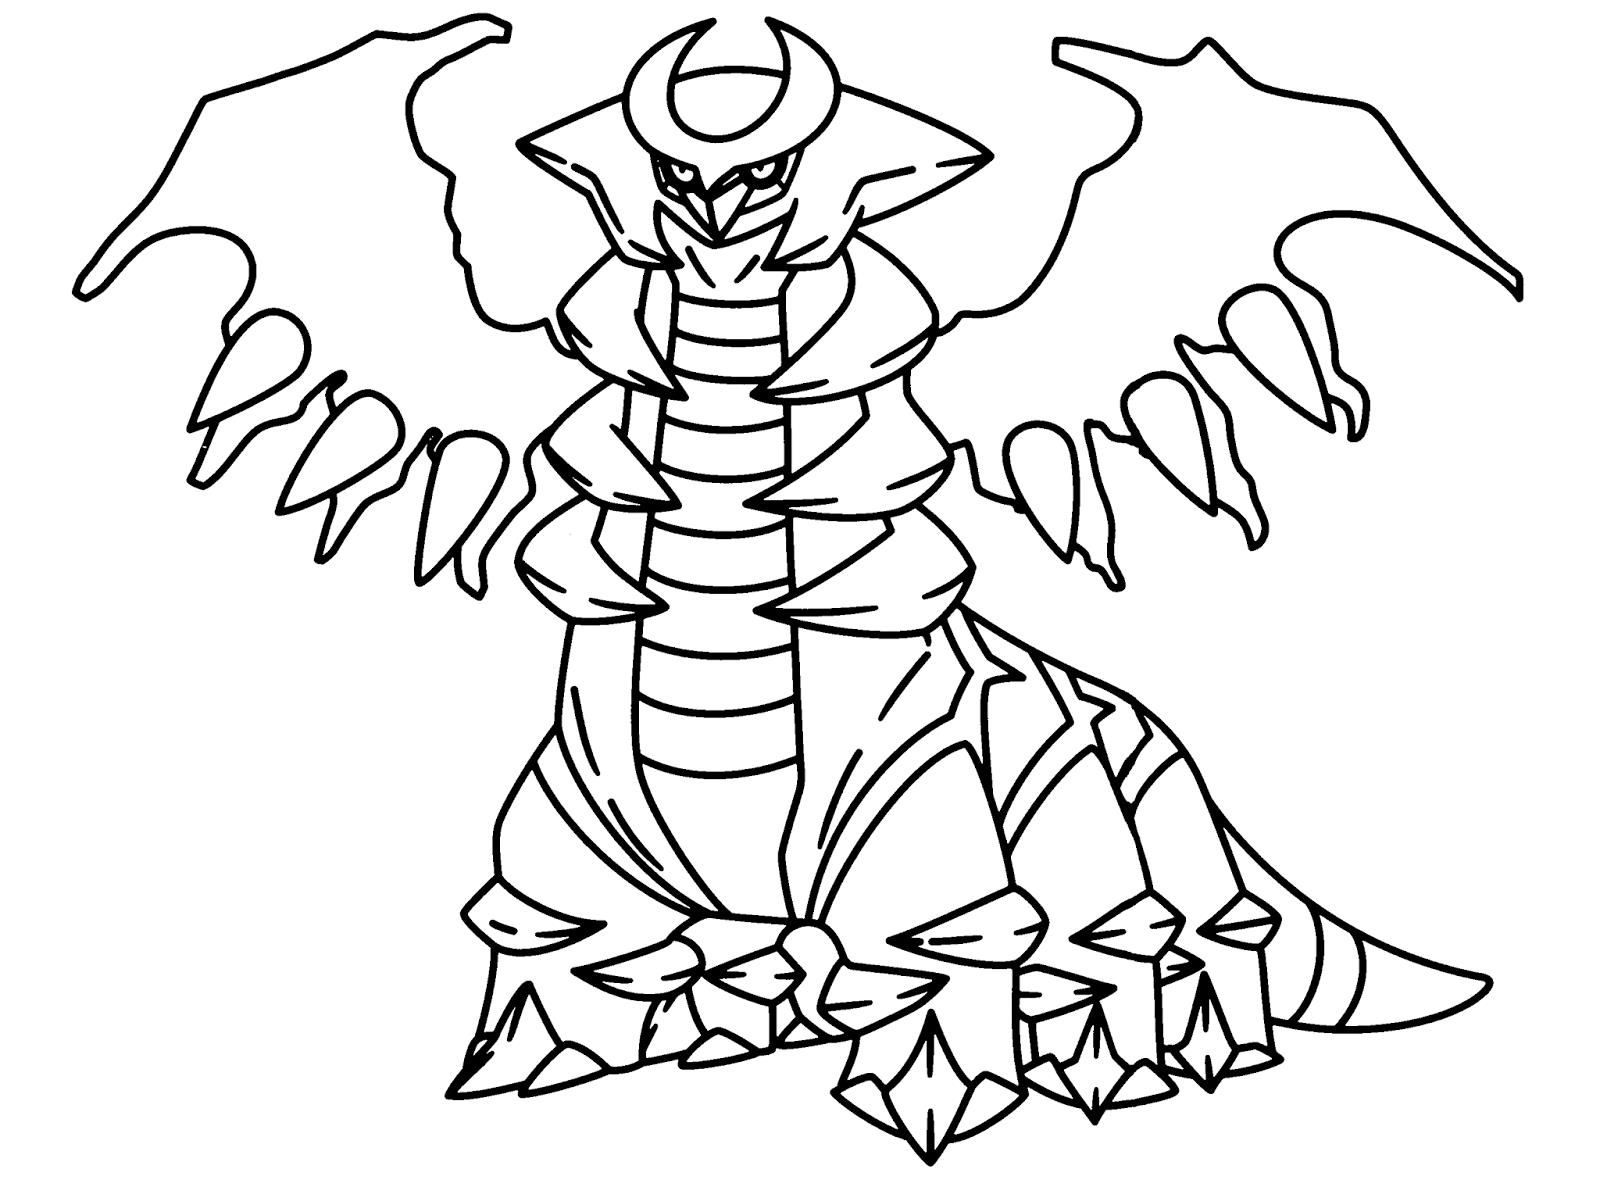 1600x1187 Growth Regice Coloring Pages Pokemon Emerald Elegant